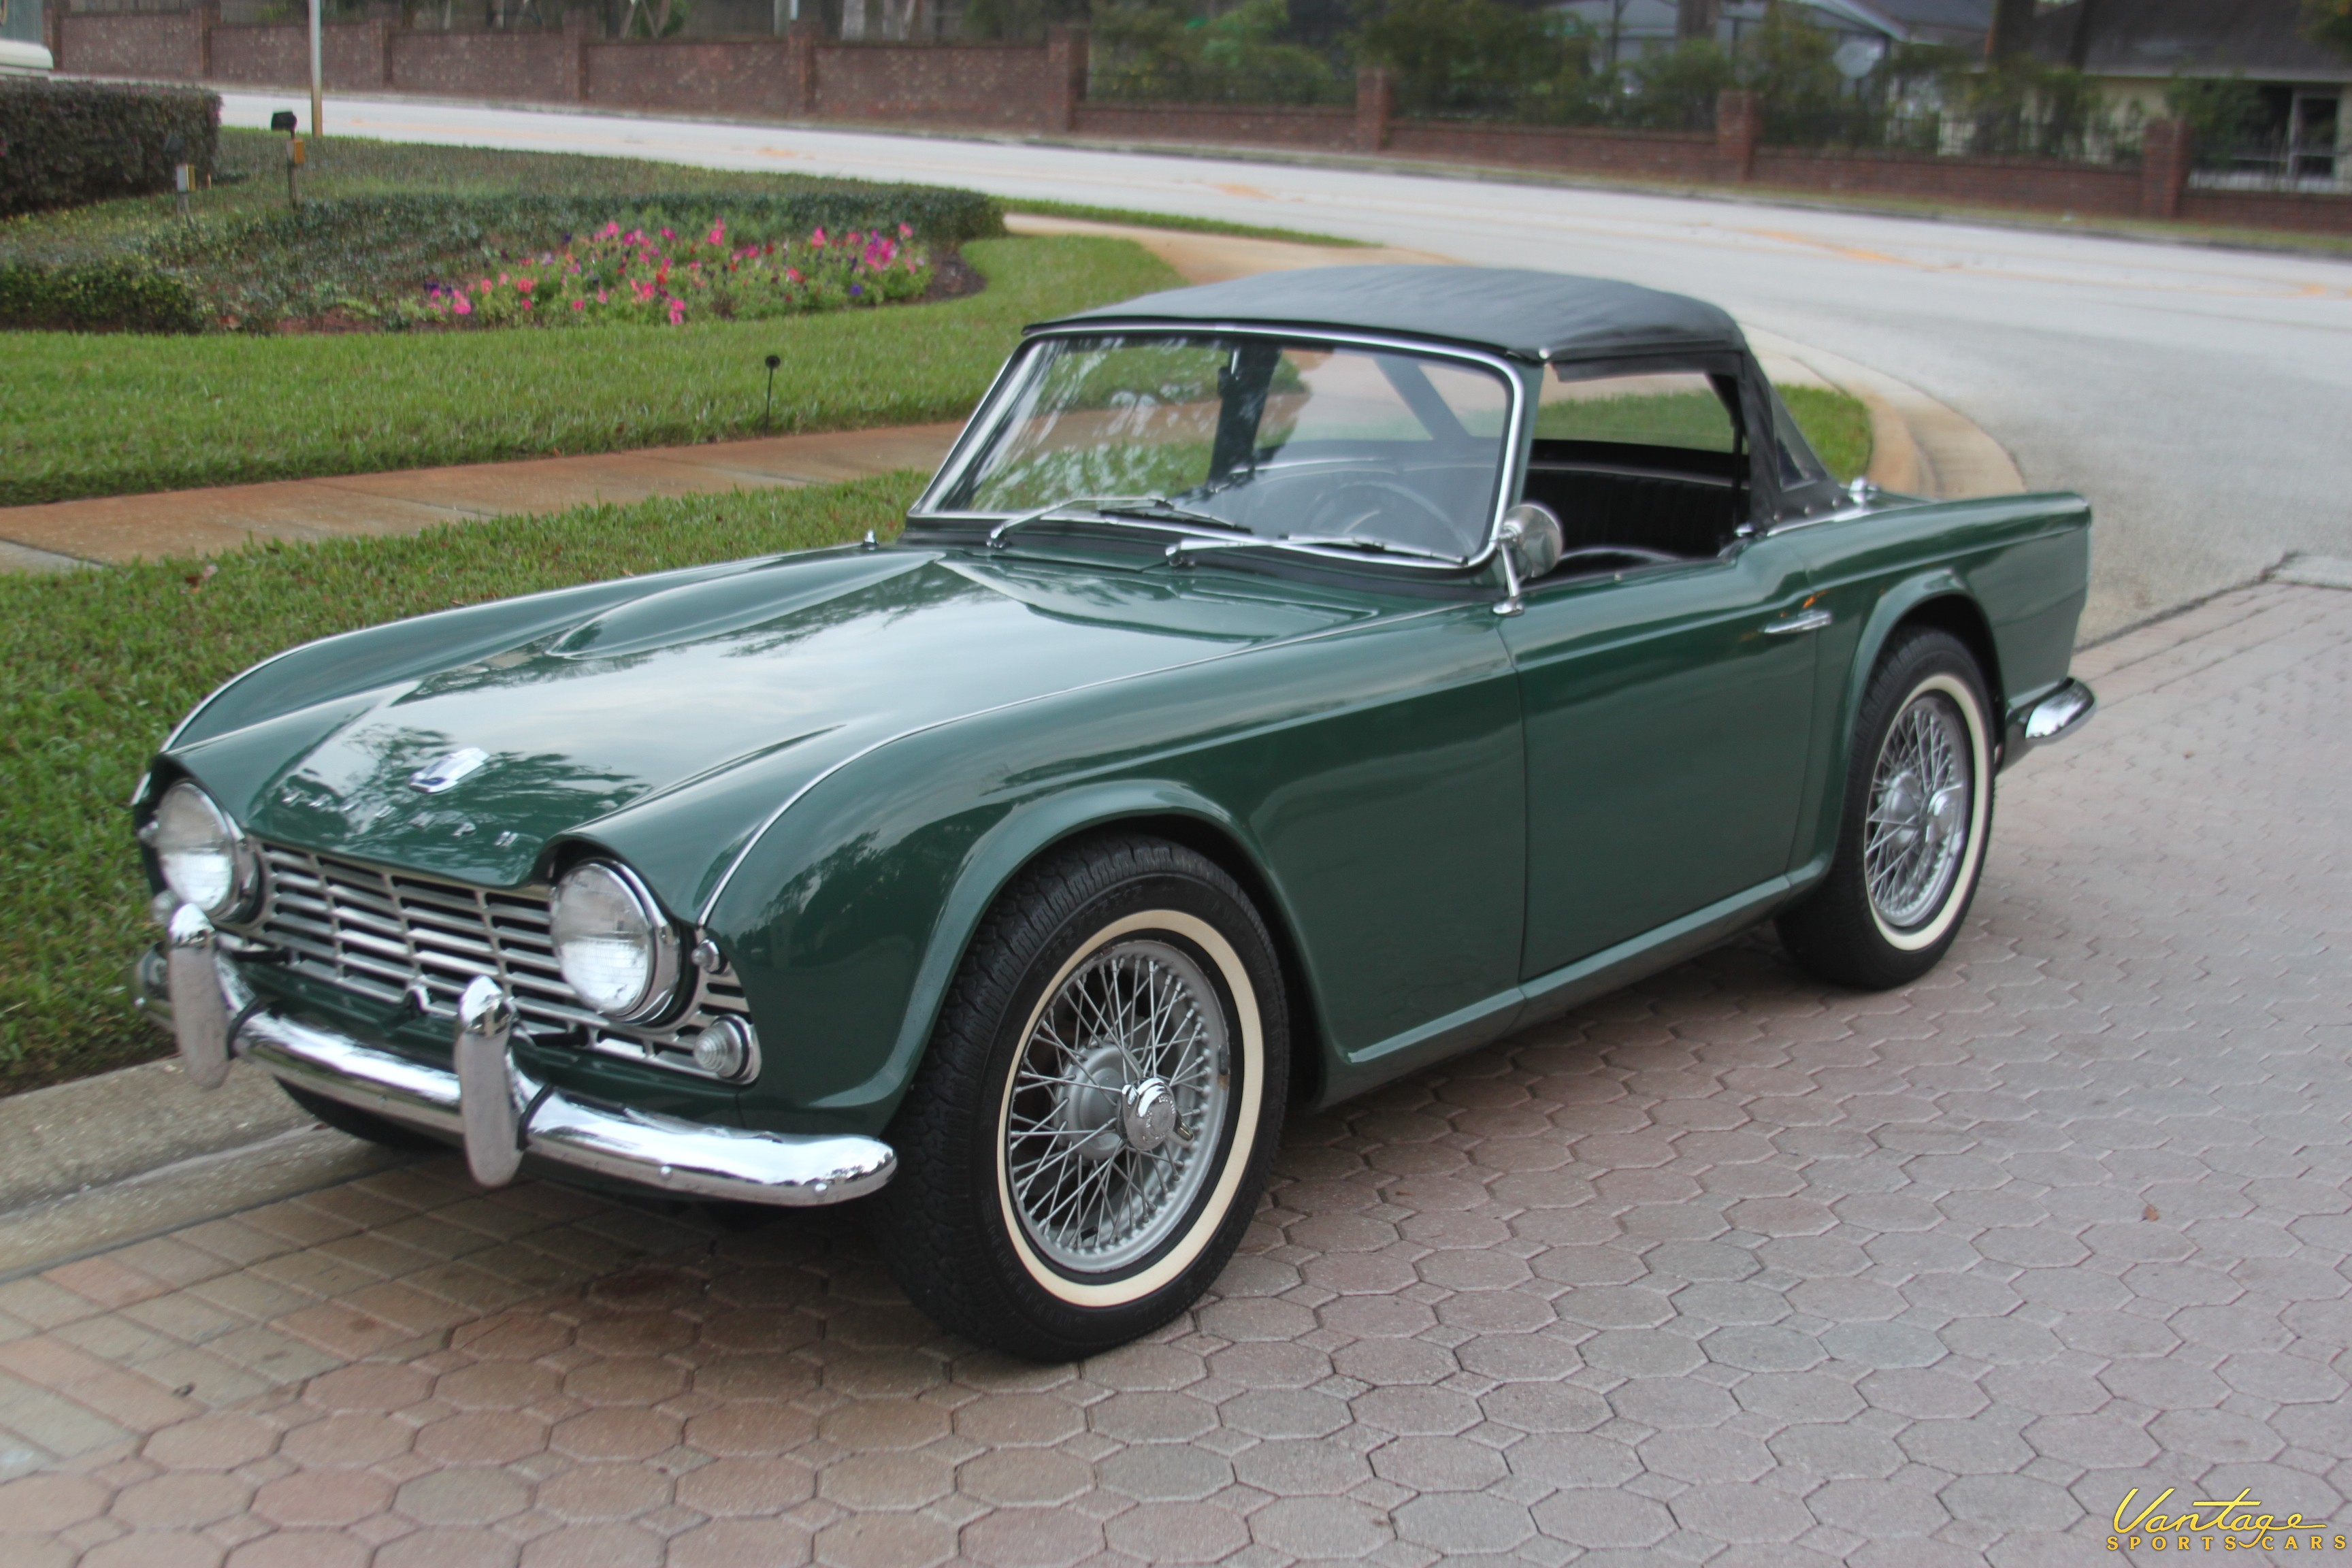 1963 Triumph Tr4 Sold Vantage Sports Cars Vantage